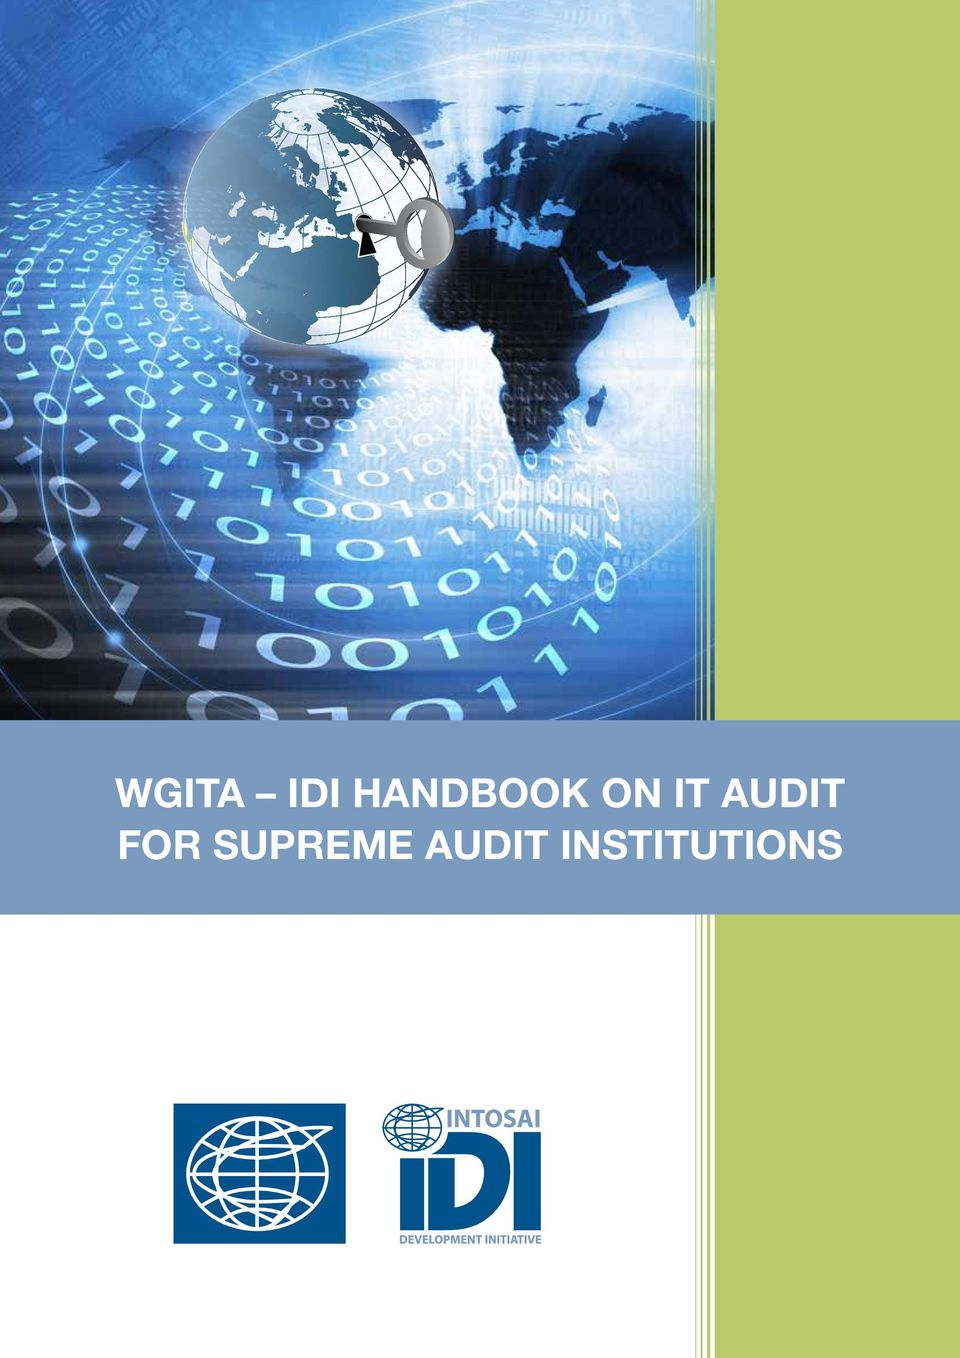 AUDIT FOR